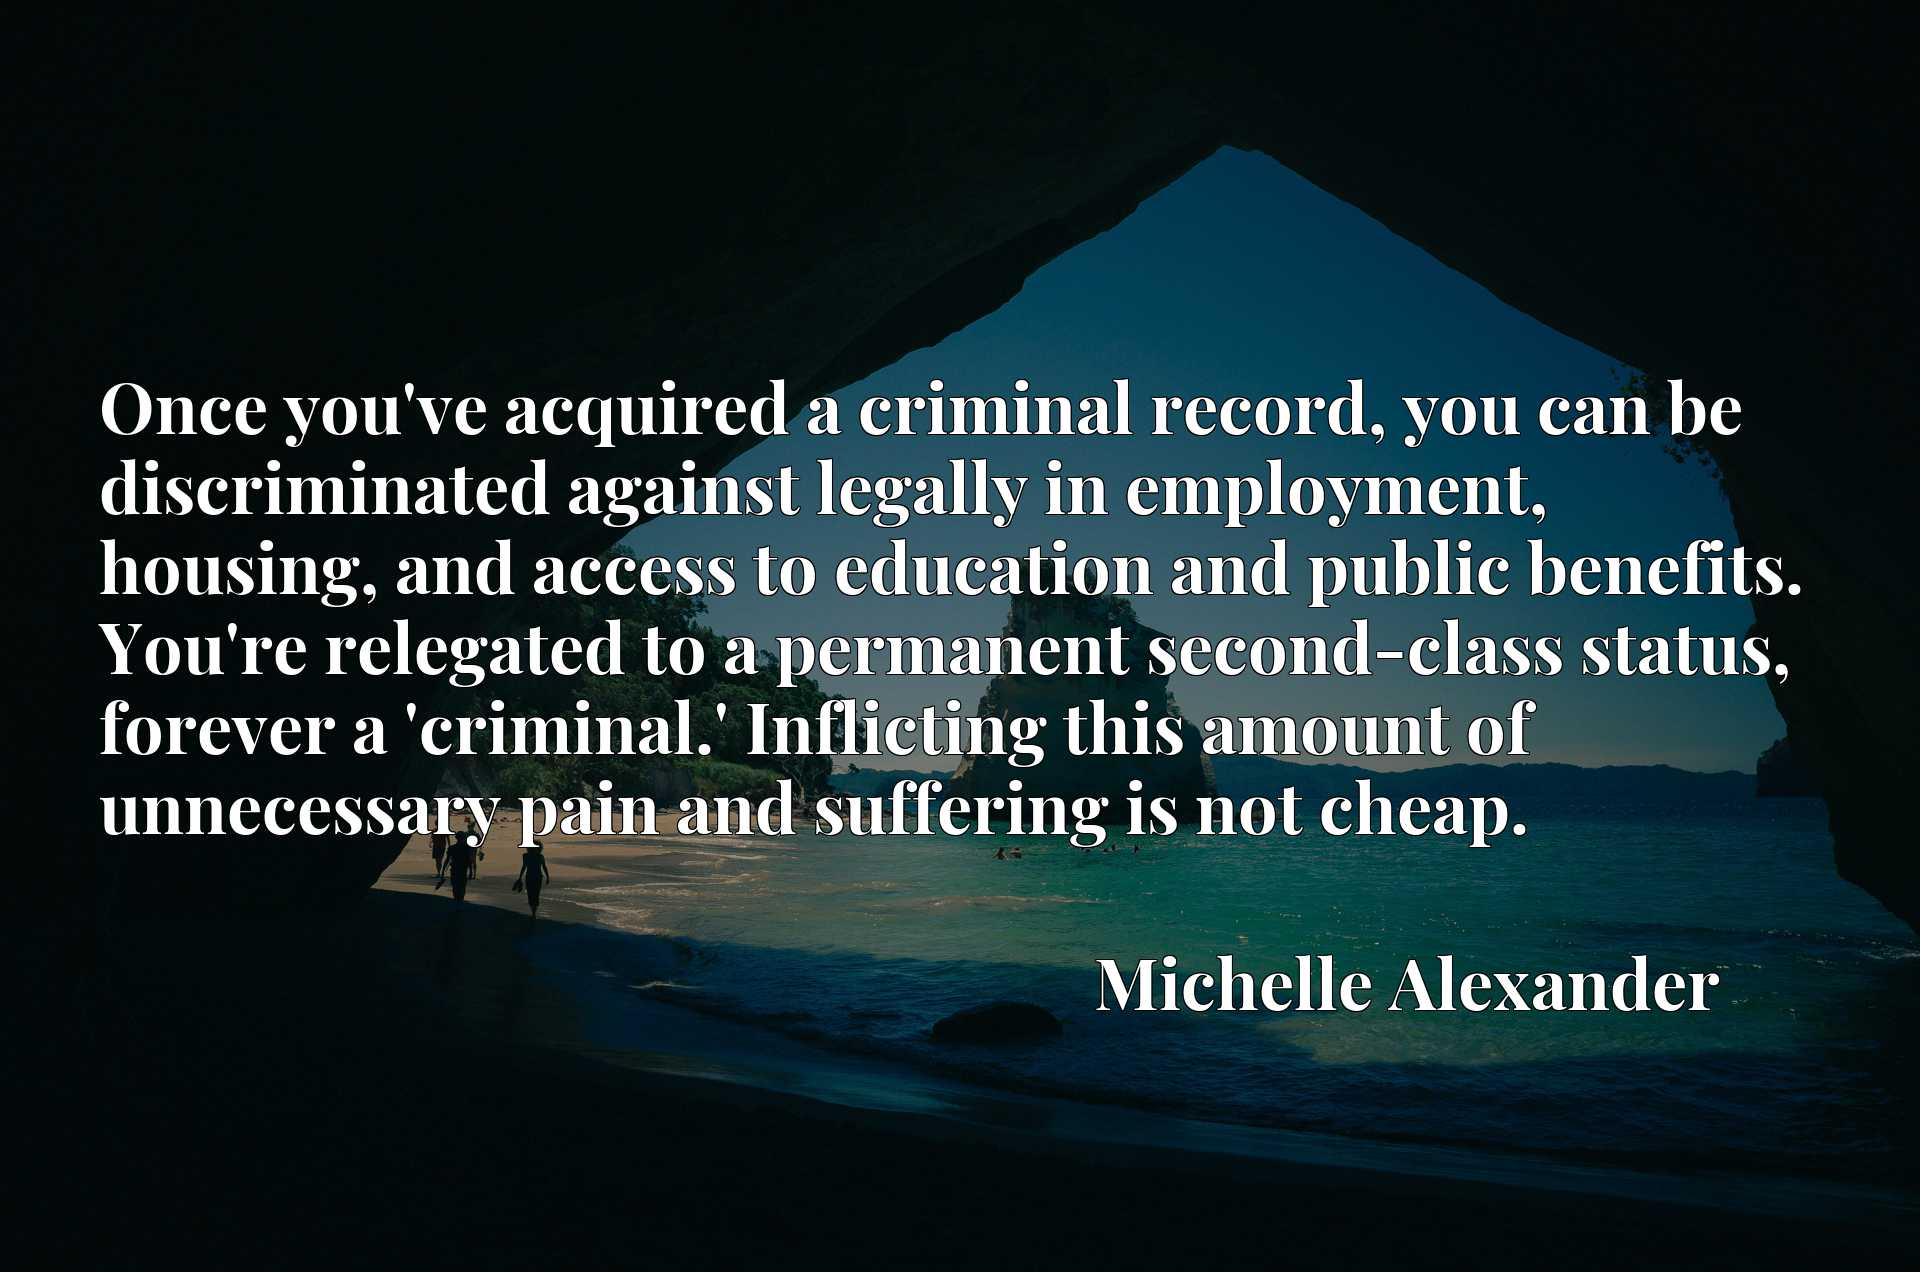 Once you've acquired a criminal record, you can be discriminated against legally in employment, housing, and access to education and public benefits. You're relegated to a permanent second-class status, forever a 'criminal.' Inflicting this amount of unnecessary pain and suffering is not cheap.